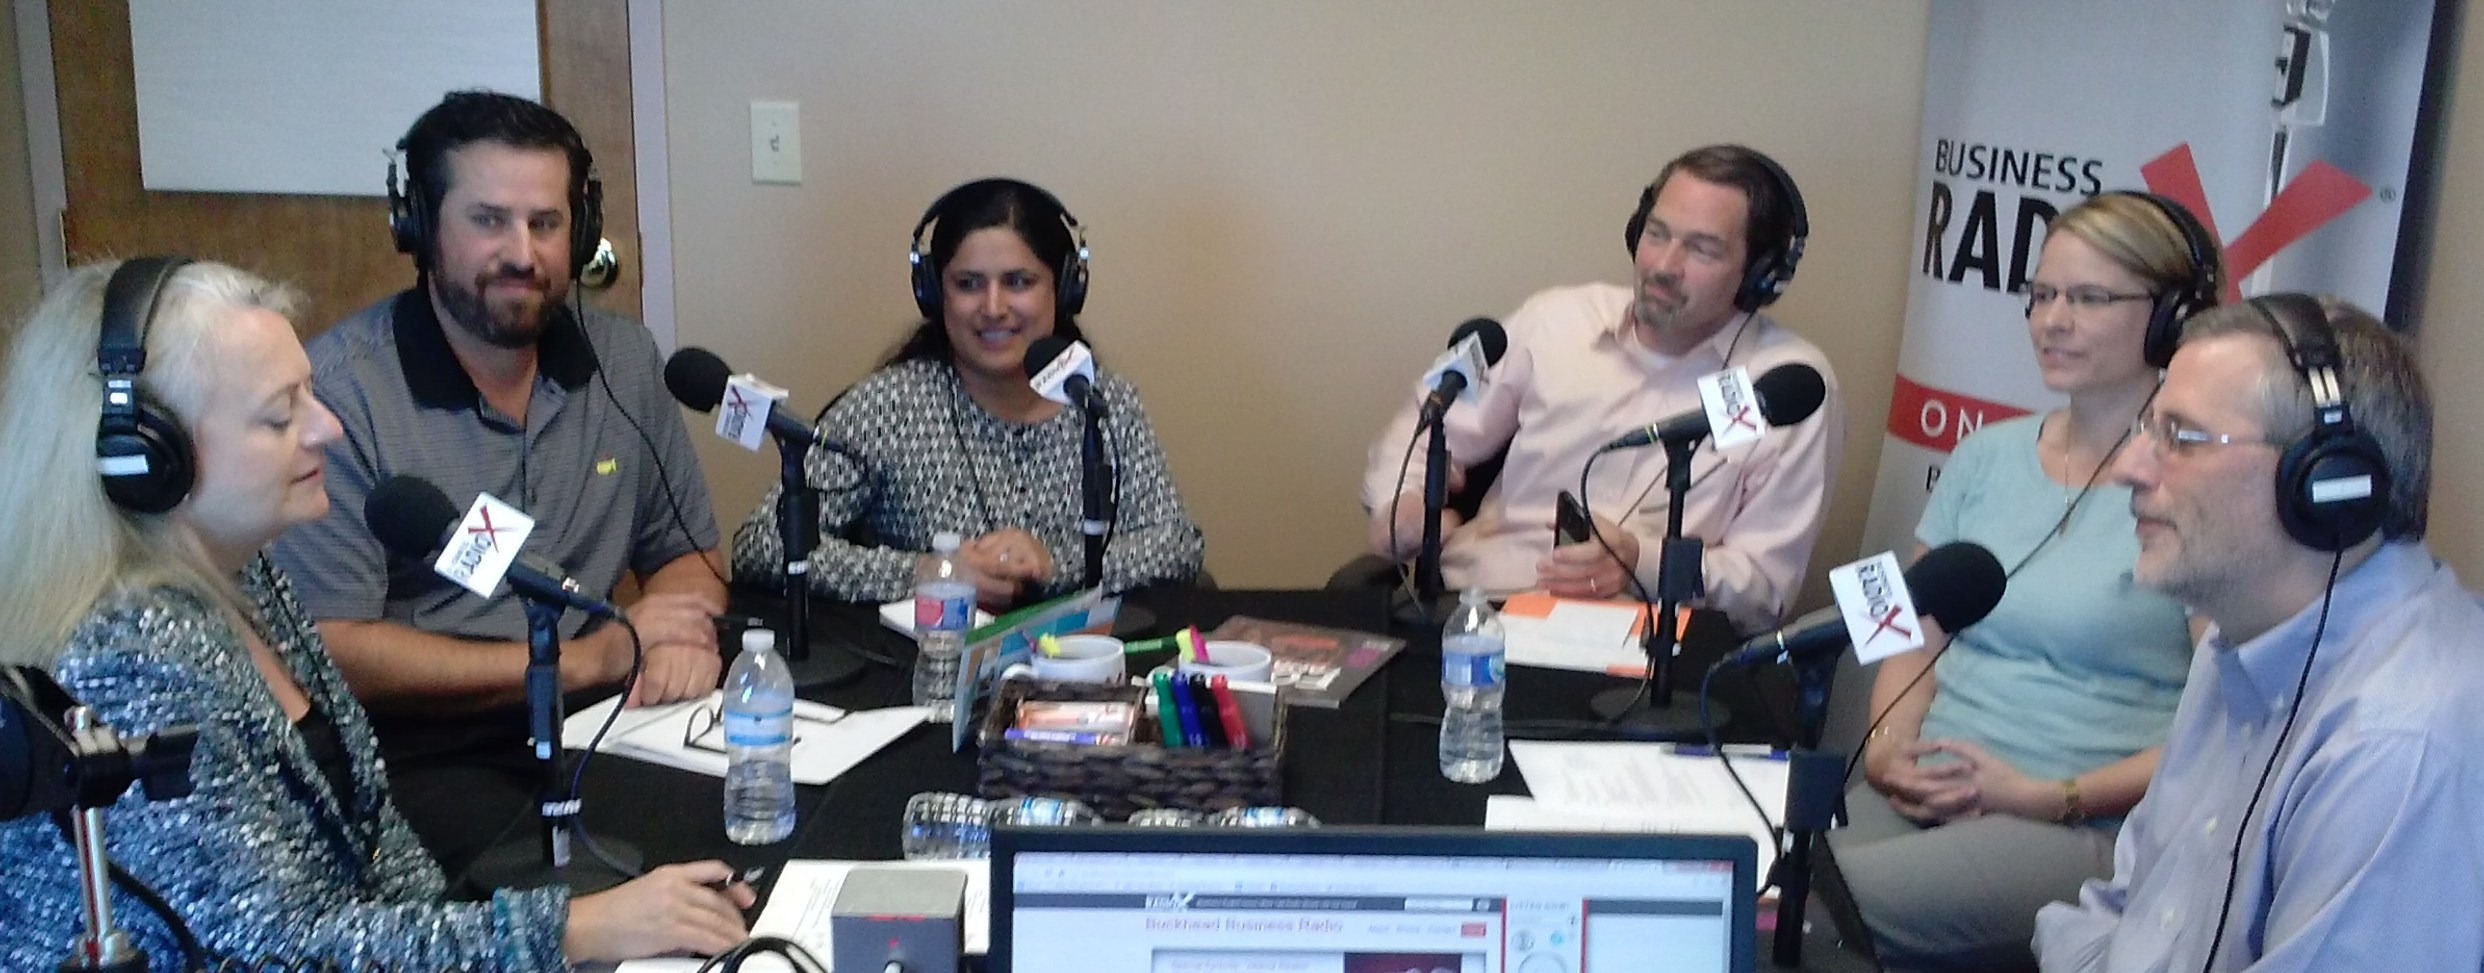 Buckhead Business Radio 08-26-14  Group 1